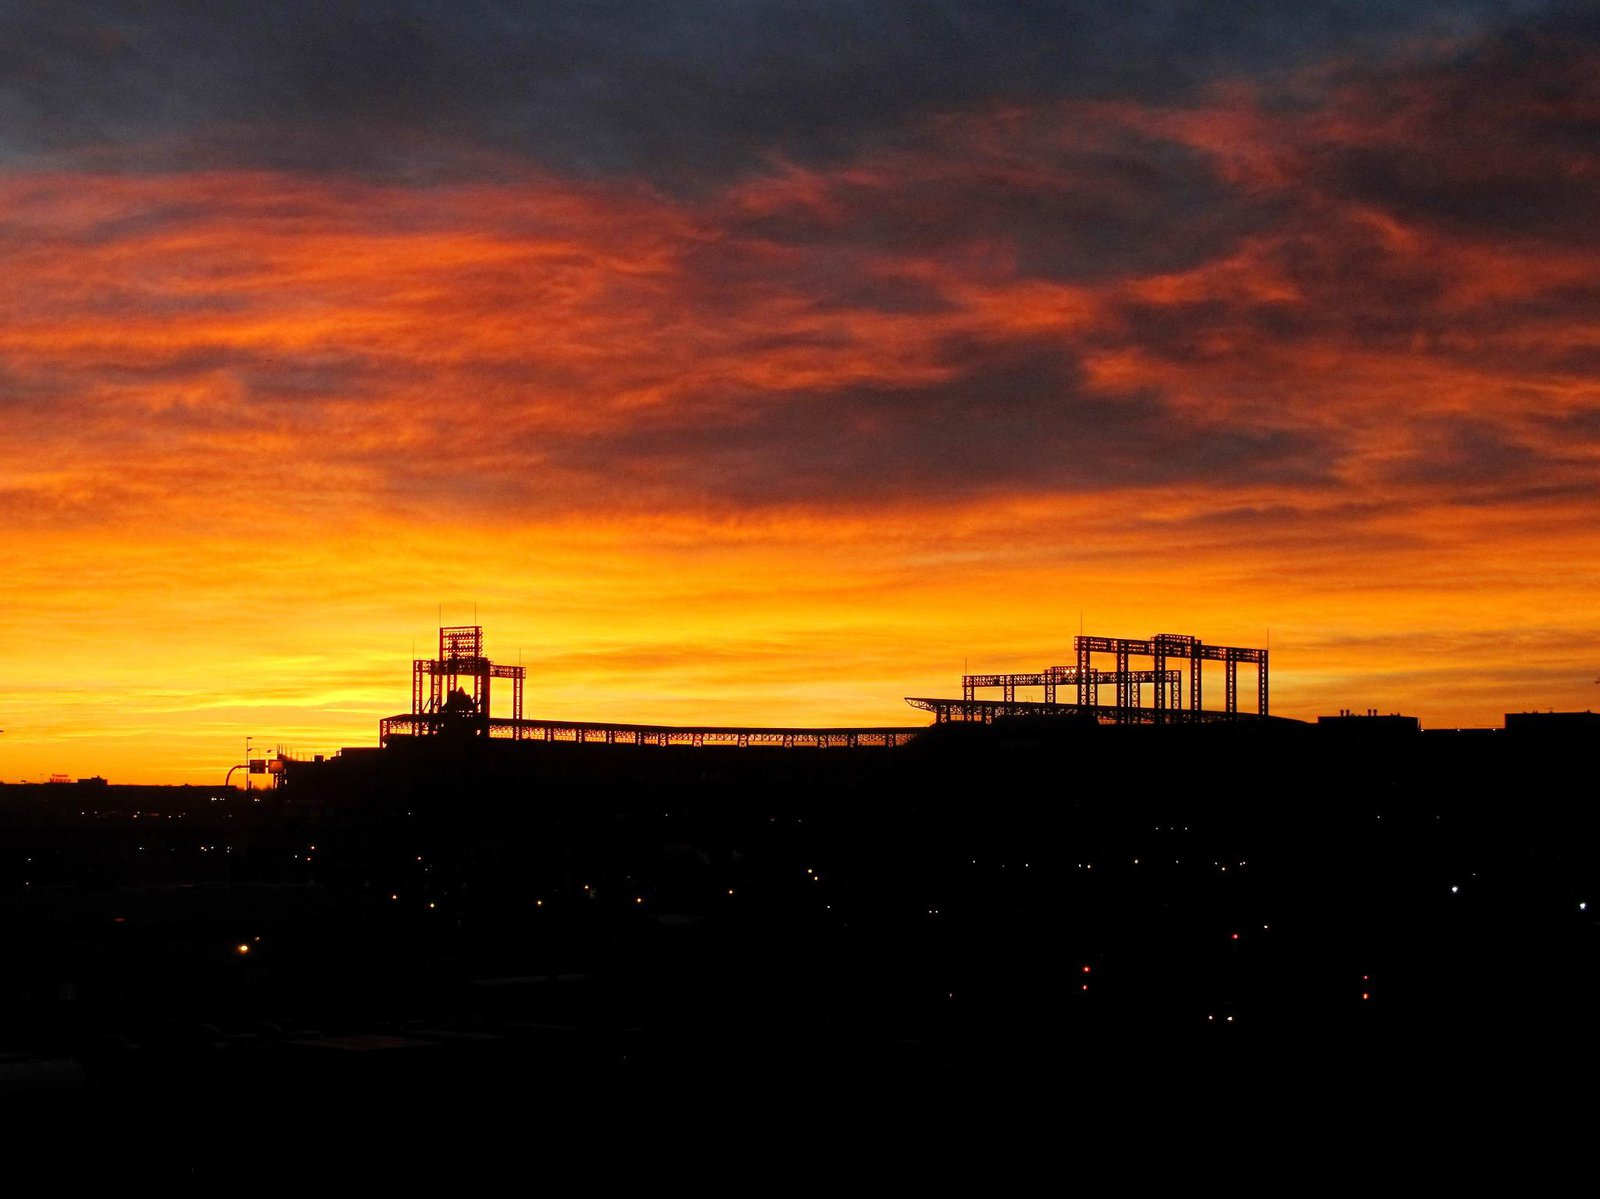 Sunrise over Coors Field